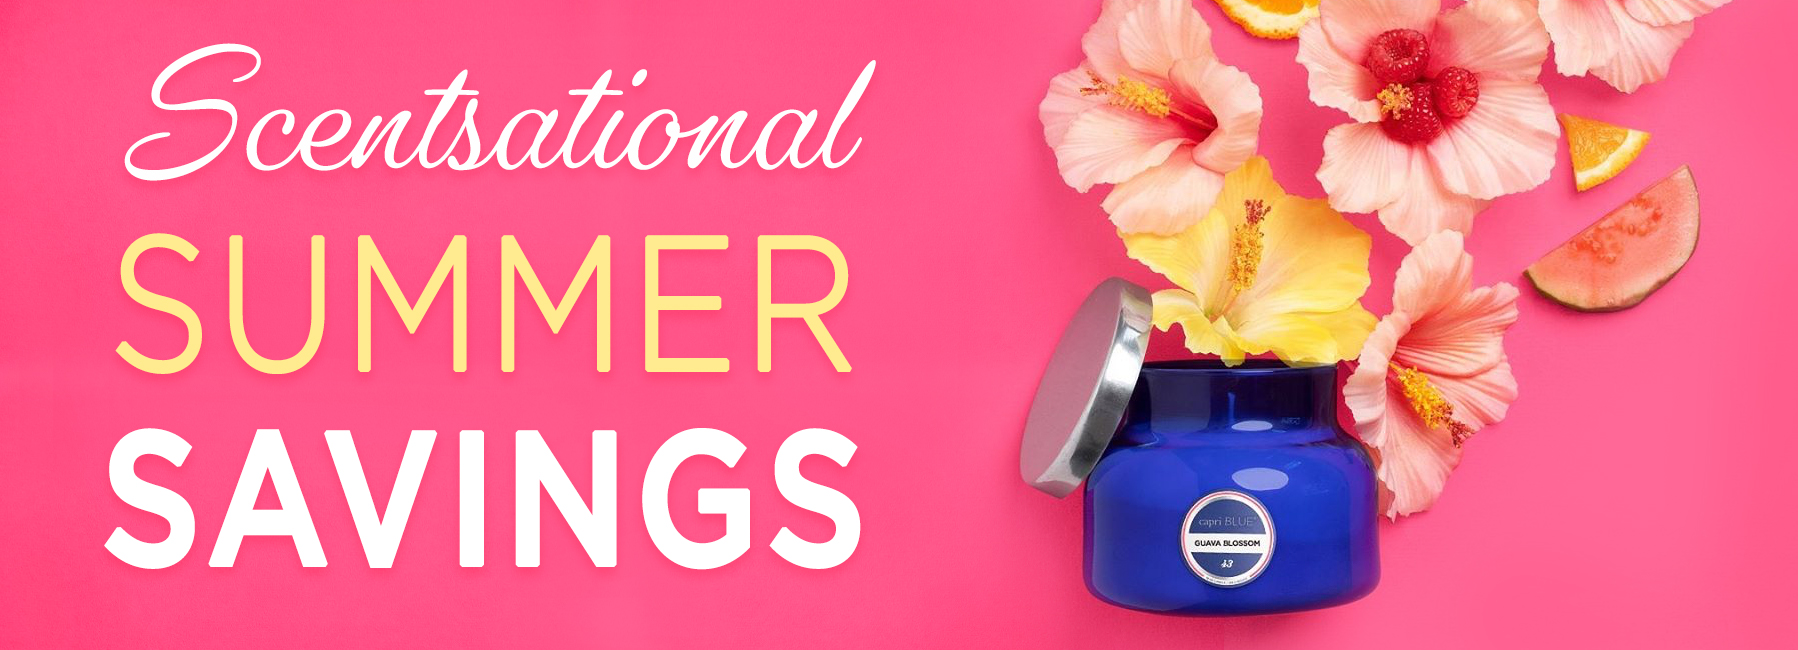 Scentsational Summer Savings